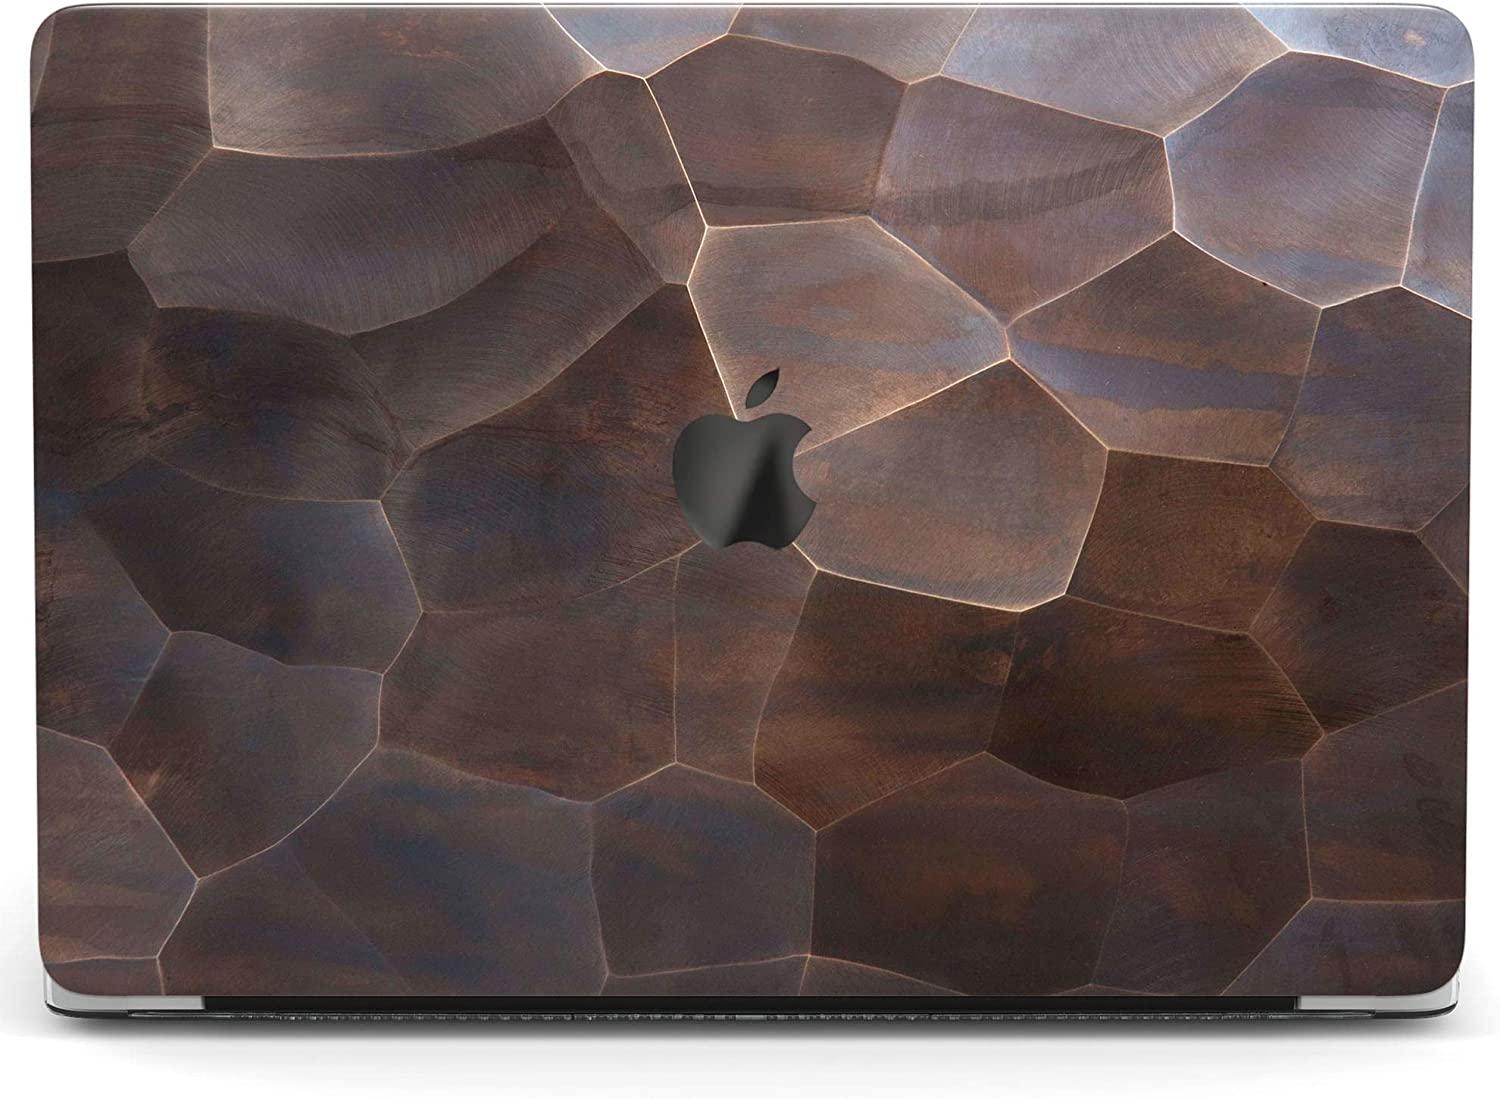 Wonder Wild Case for MacBook Air 13 inch Pro 15 2019 2018 Retina 12 11 Apple Hard Mac Protective Cover Touch Bar 2017 2016 2020 Plastic Laptop Print Tree Chips Bronze Wooden Mosaic Brown Tile Minimal